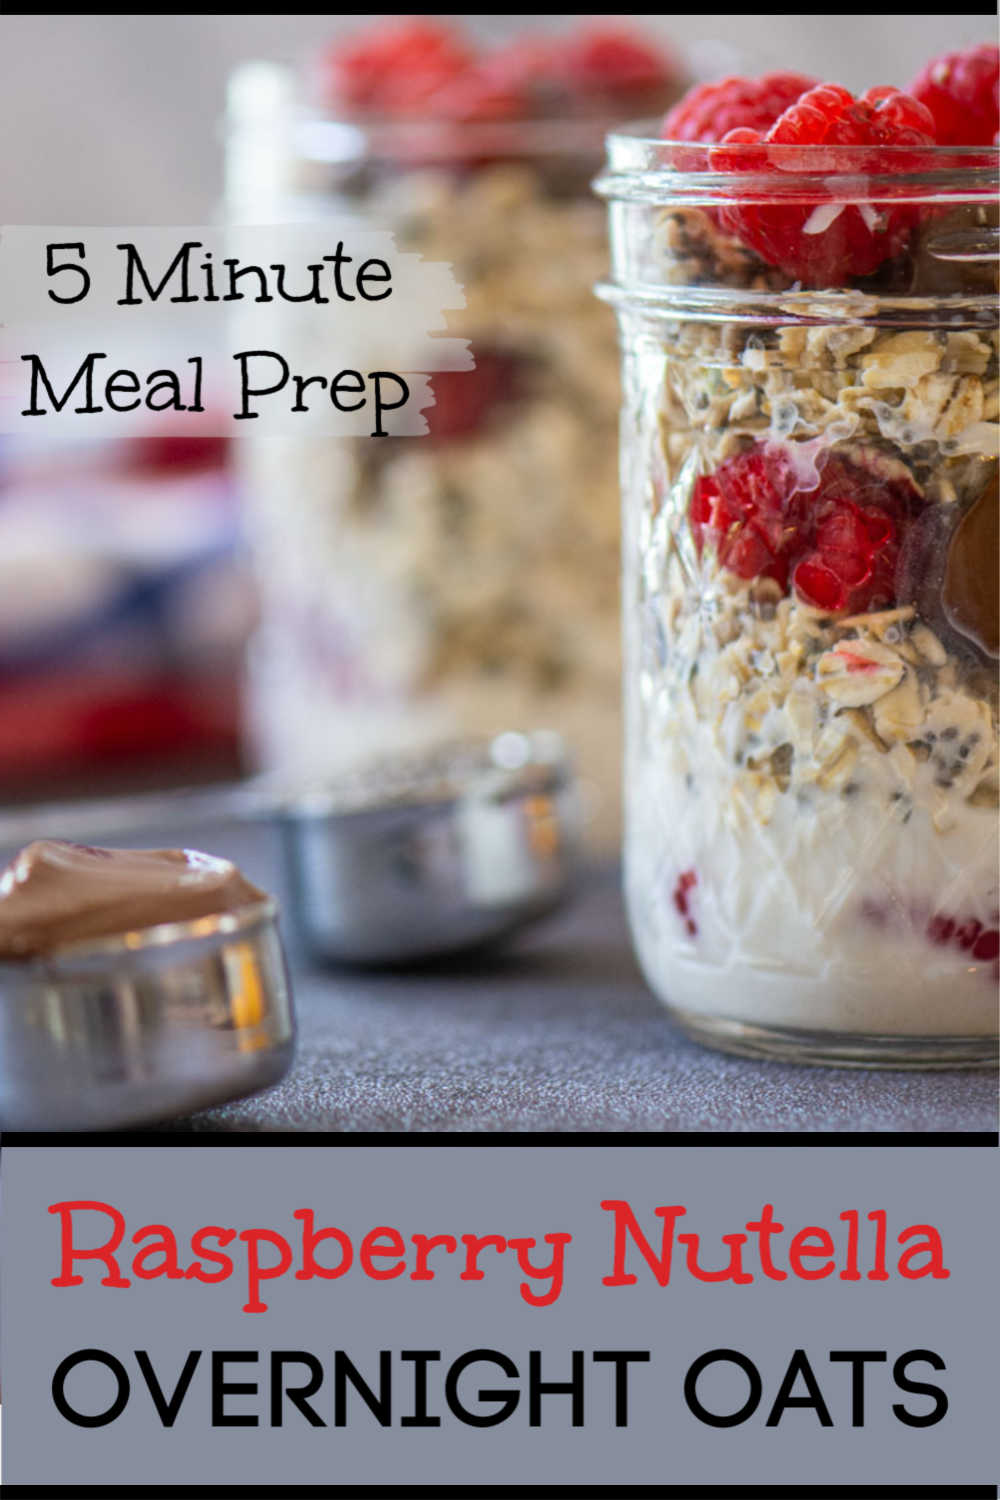 Raspberry Nutella Overnight Oats are a Dream for Meal Prepping your Breakfast. This is always the easiest meal to skip or eat out. Prepare these Make Ahead Breakfasts in Five Minutes Flat! #breakfast #overnightoats #mealprep #makeahead #frugal #nutella #raspberries